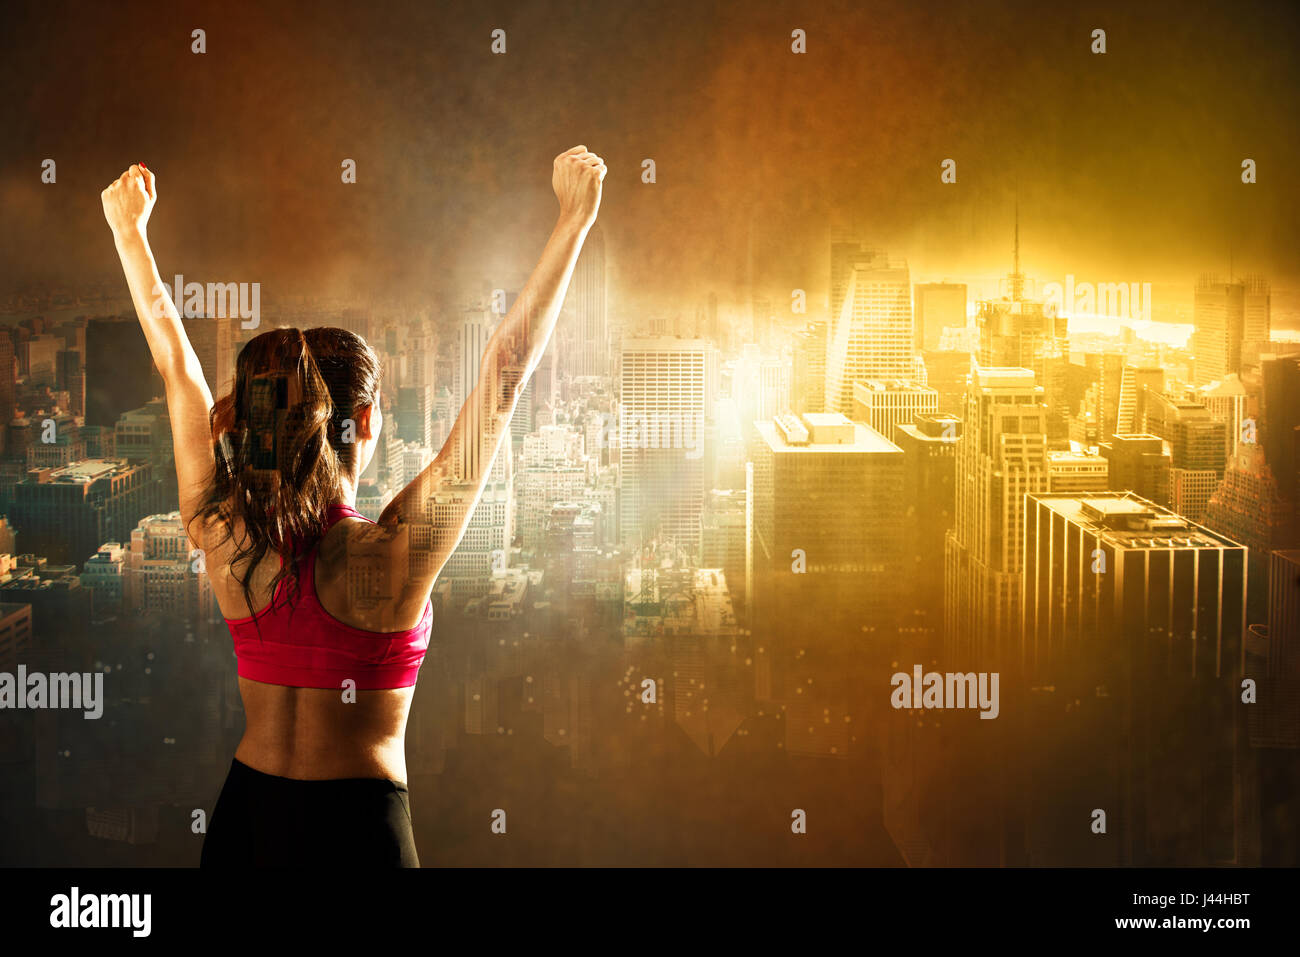 Athletic woman on city background - Stock Image